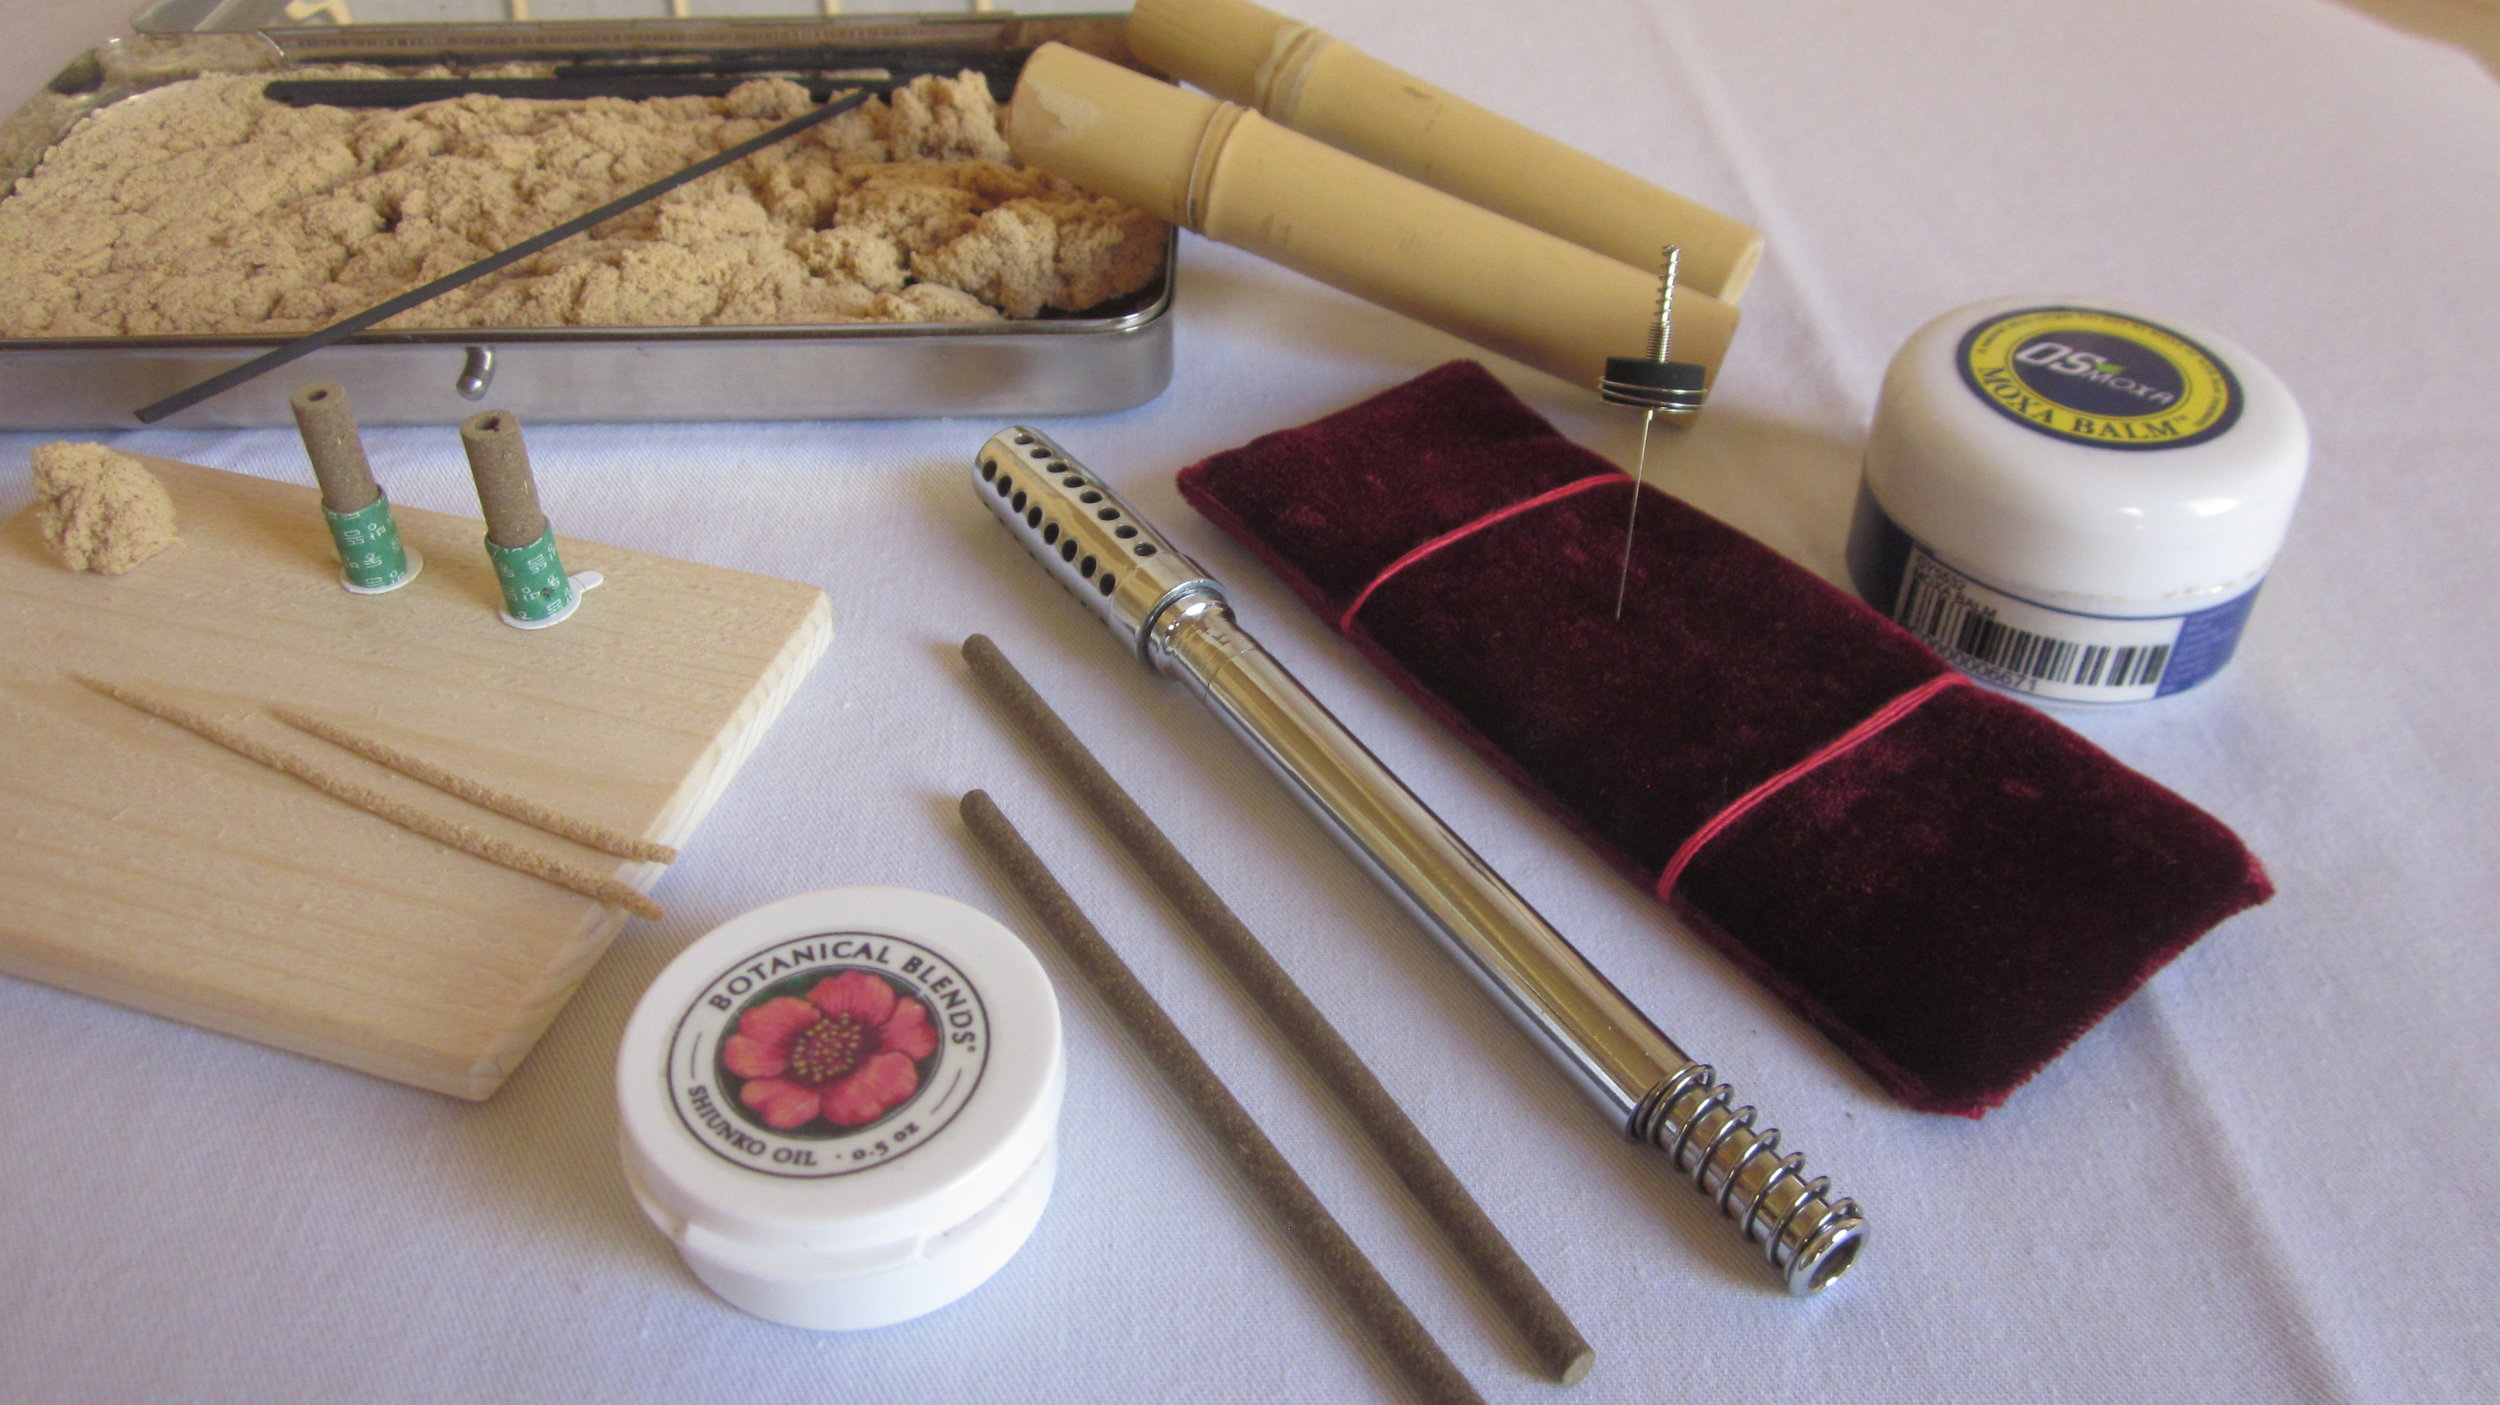 We use different types of Moxibustion in our treatments depending on the condition. From left to right: Punk moxa, hand-rolled thread moxa for rice grain technique, stick-on moxa, tiger roller and warm needle moxa.